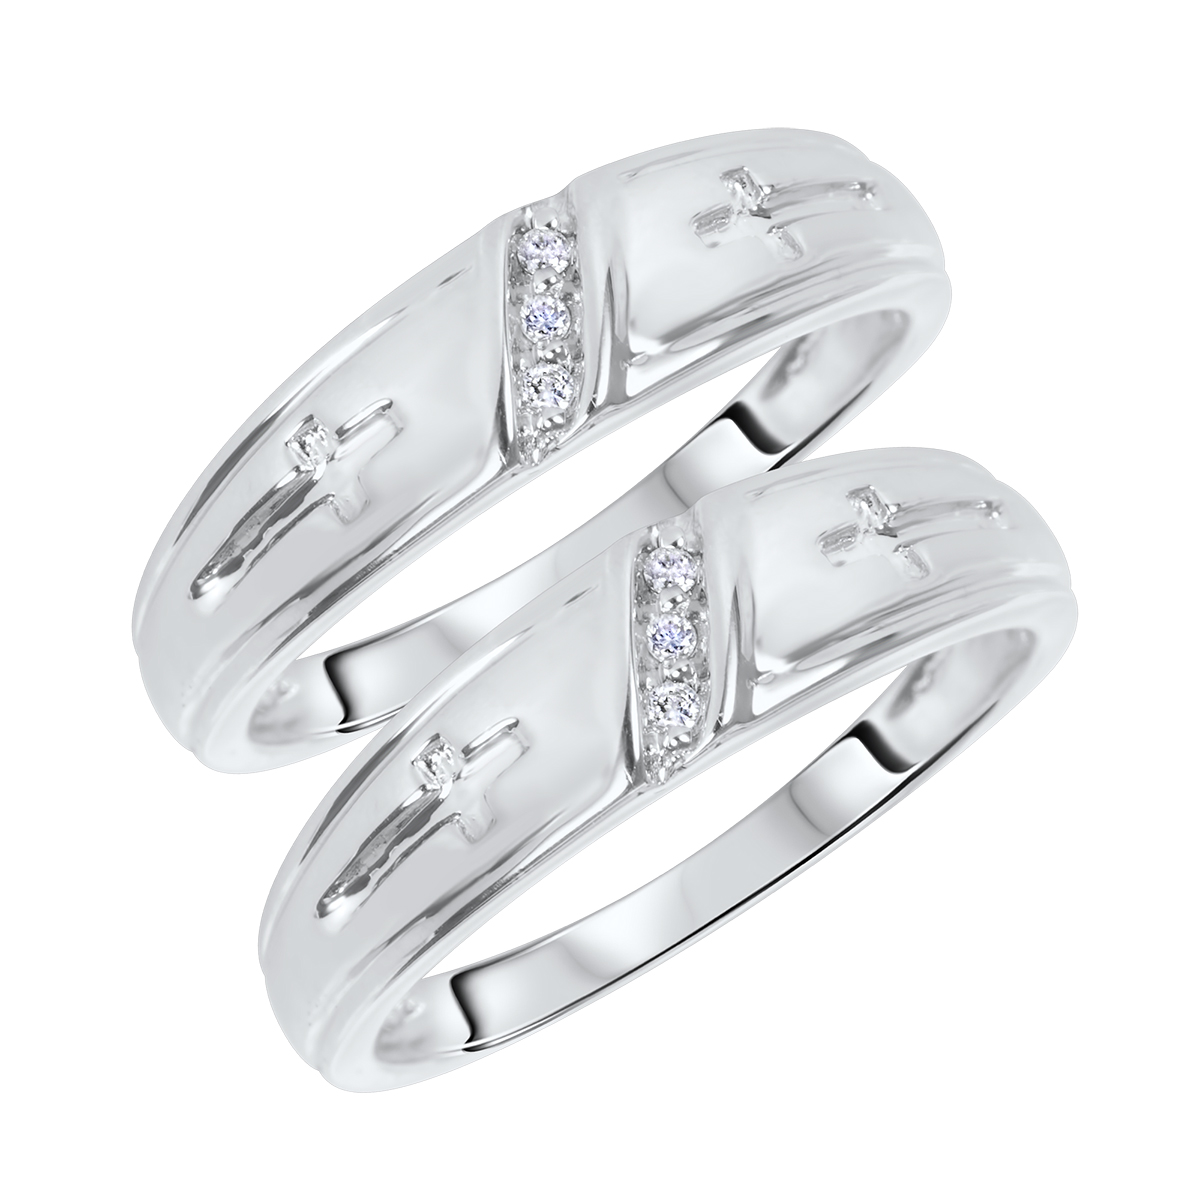 1/15 CT. T.W. Round Cut Mens  Same Sex Wedding Band Set 10K White Gold- Size 8